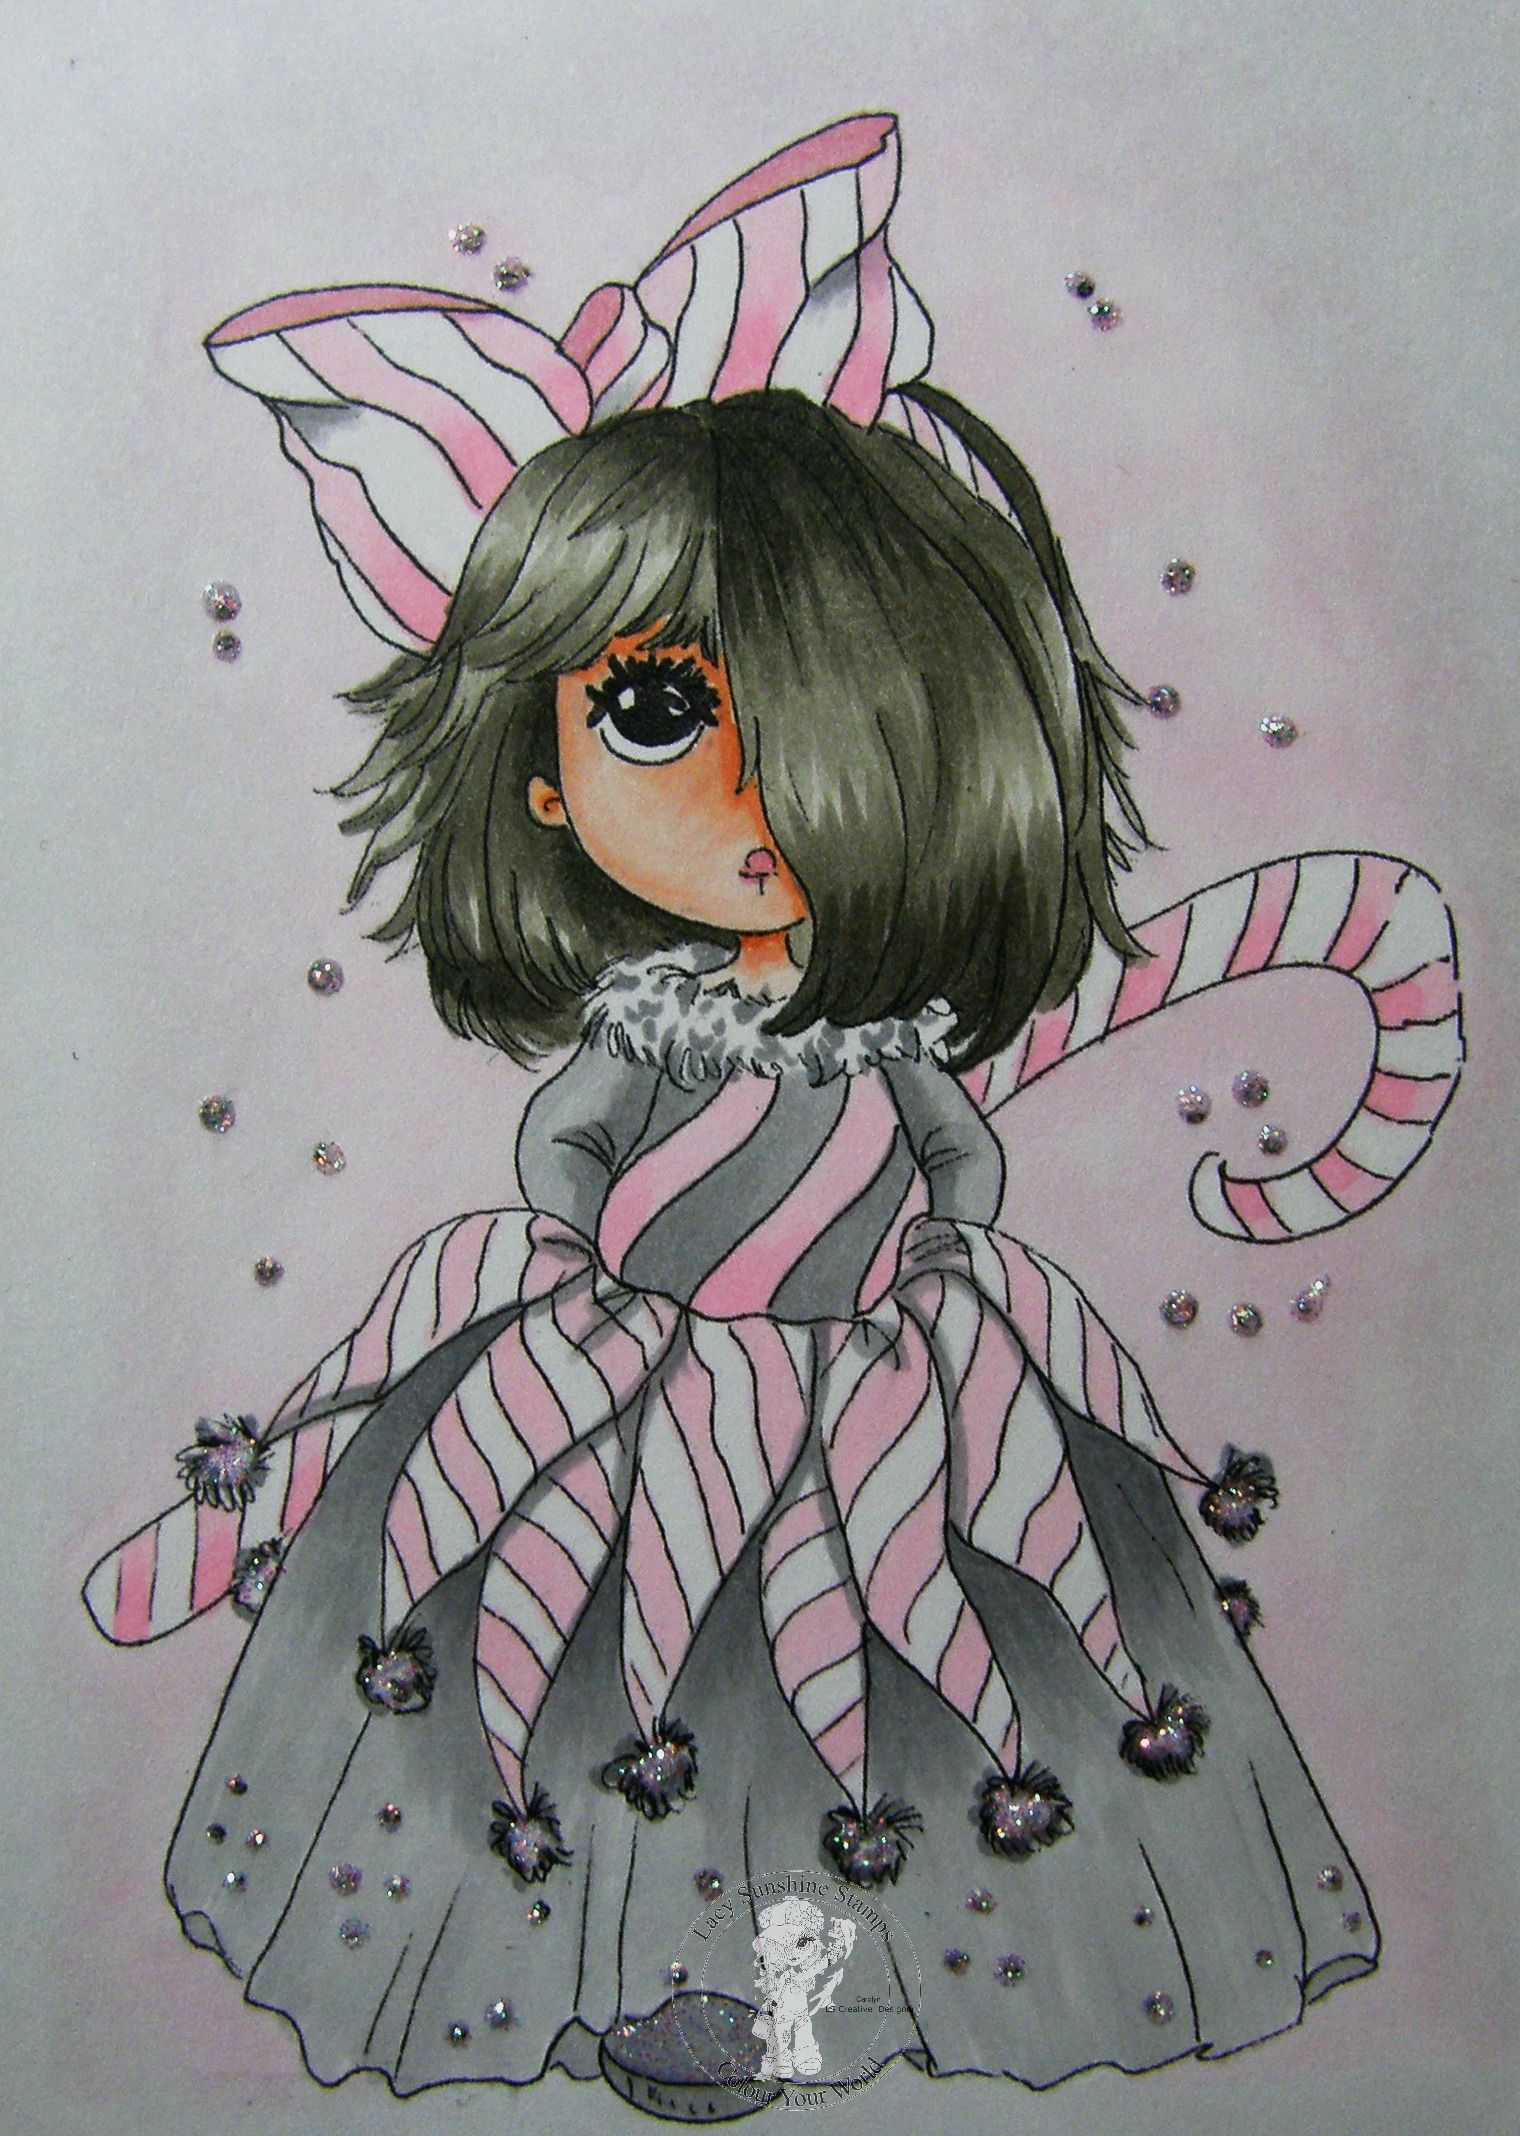 Coloring: Peppermint Sugi Digital Image From Lacy Sunshine